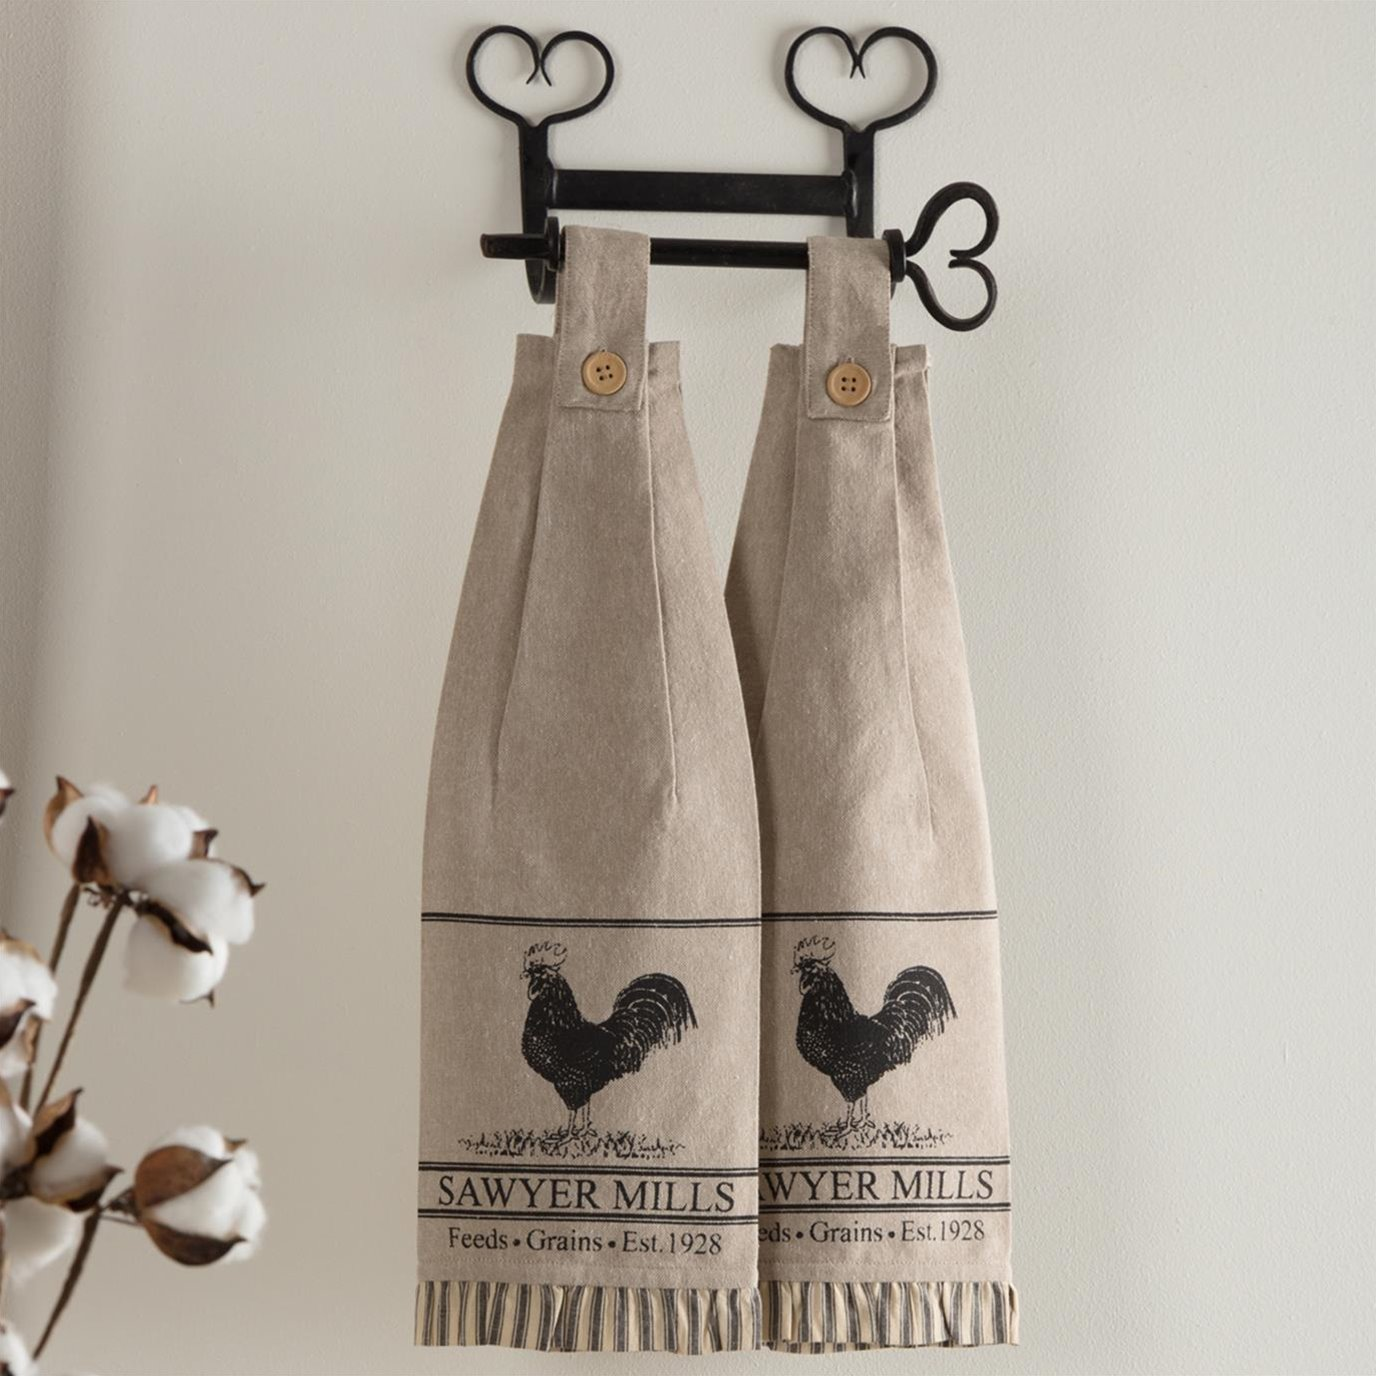 Sawyer Mill Charcoal Poultry Button Loop Kitchen Towel Set of 2